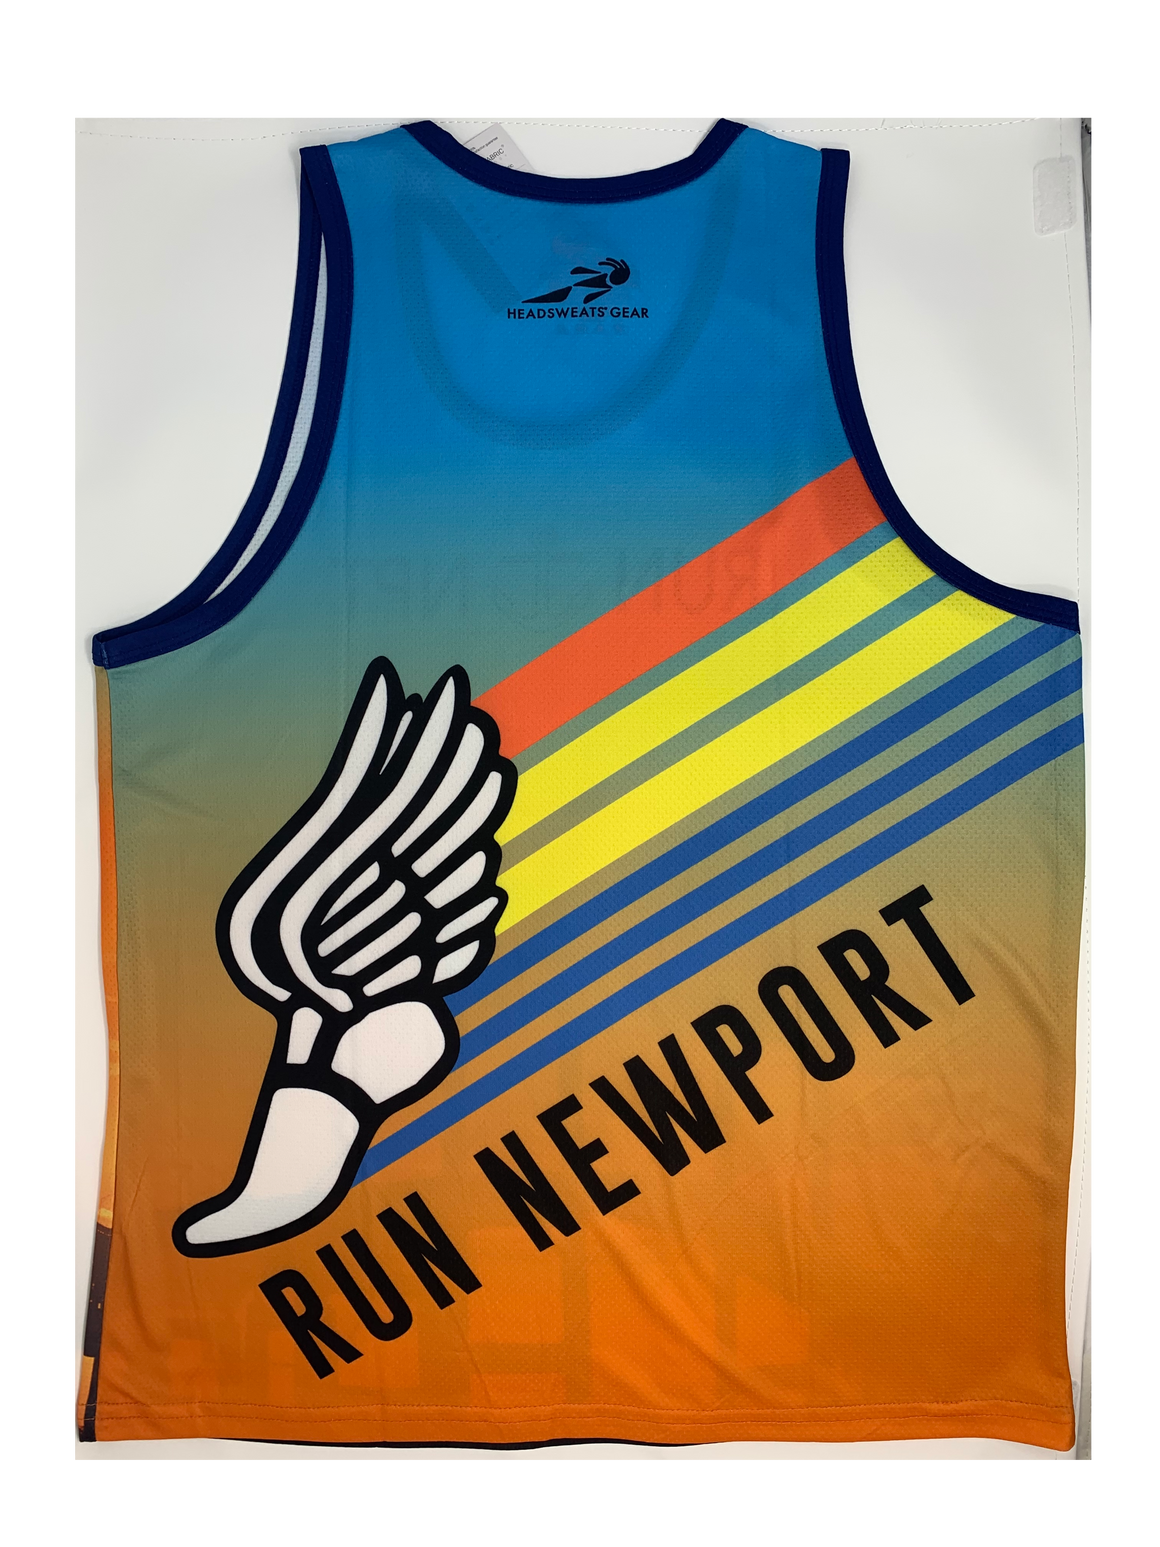 Run Newport Men's Singlet